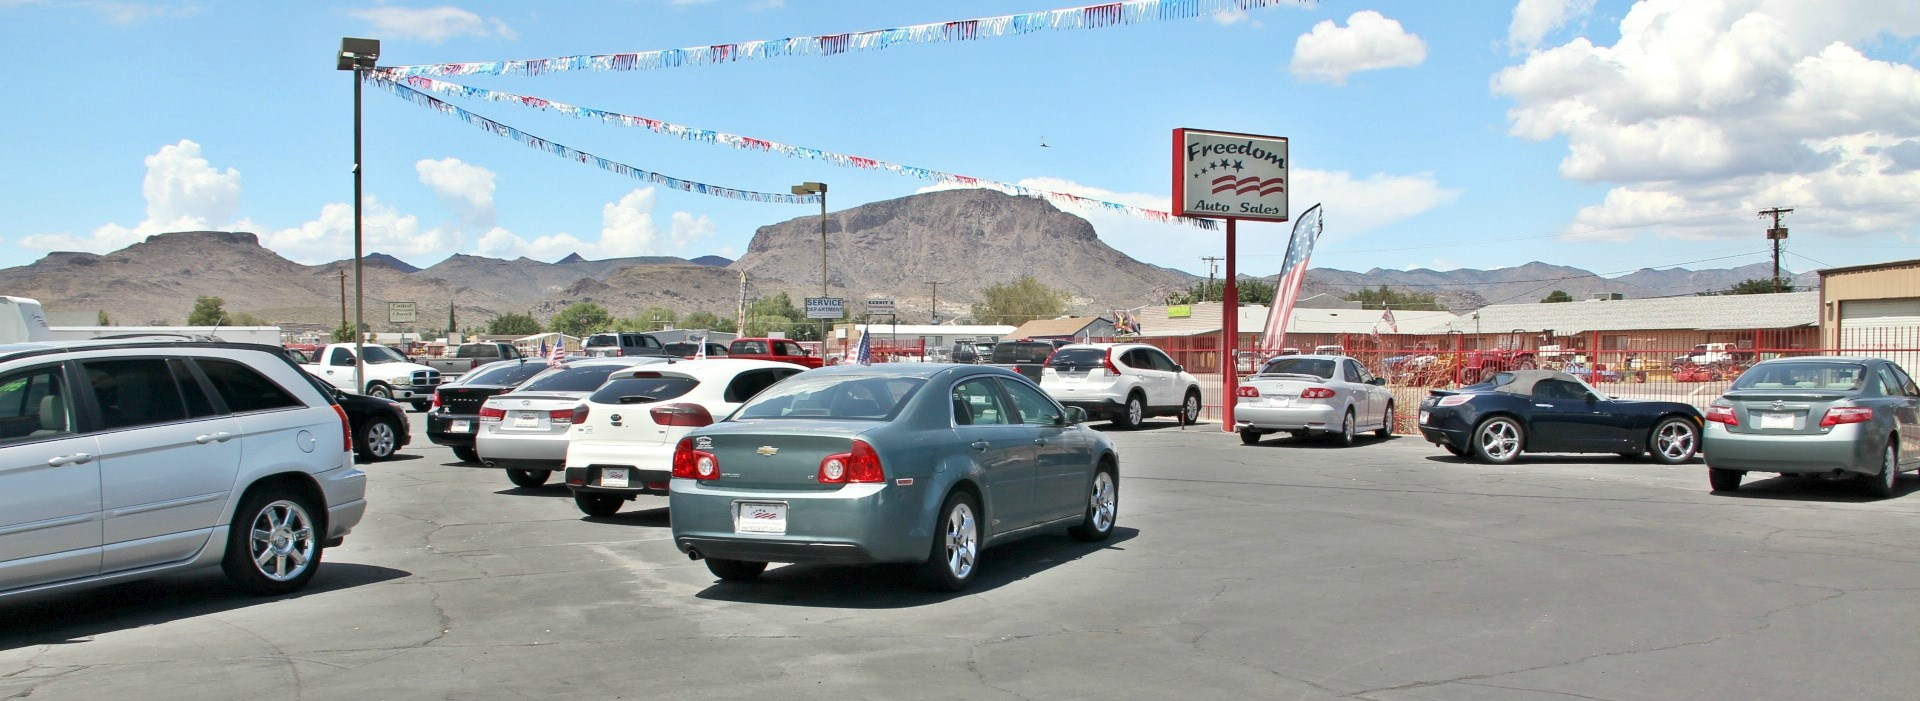 Used Car Dealrships >> Freedom Auto Sales Used Cars For Sale Kingman Az